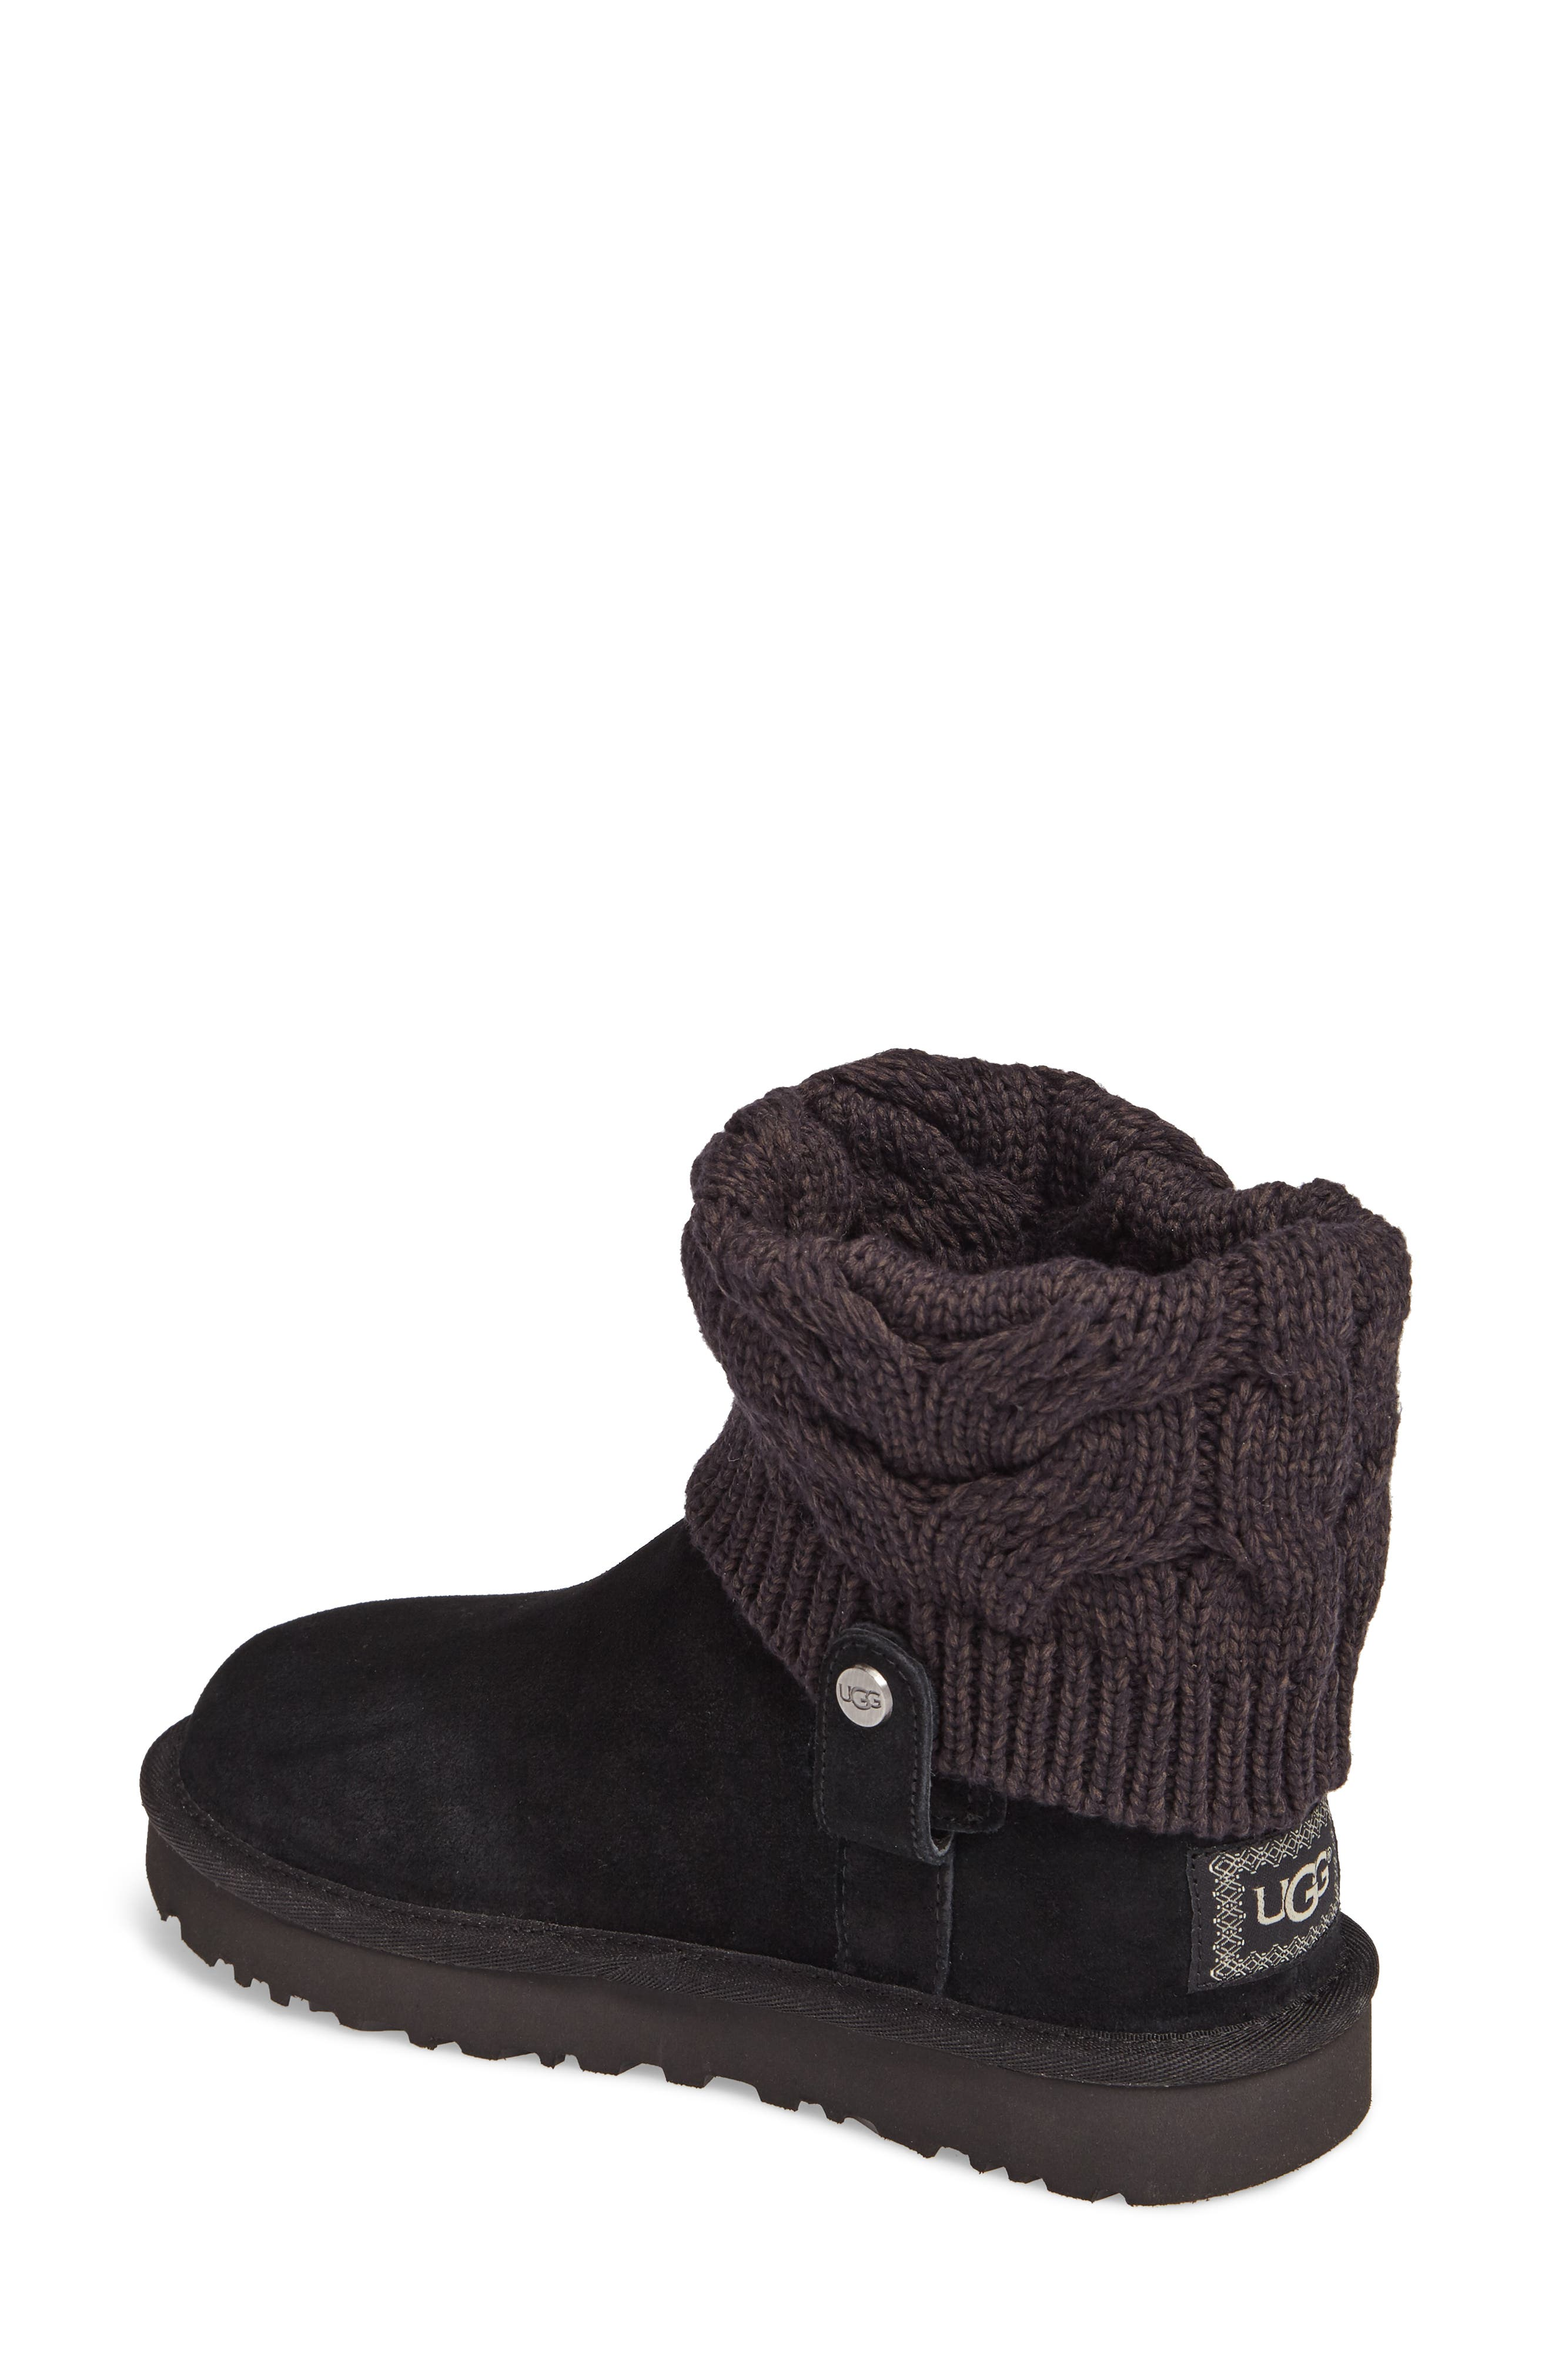 Saela Knit Cuff Boot,                             Alternate thumbnail 2, color,                             001